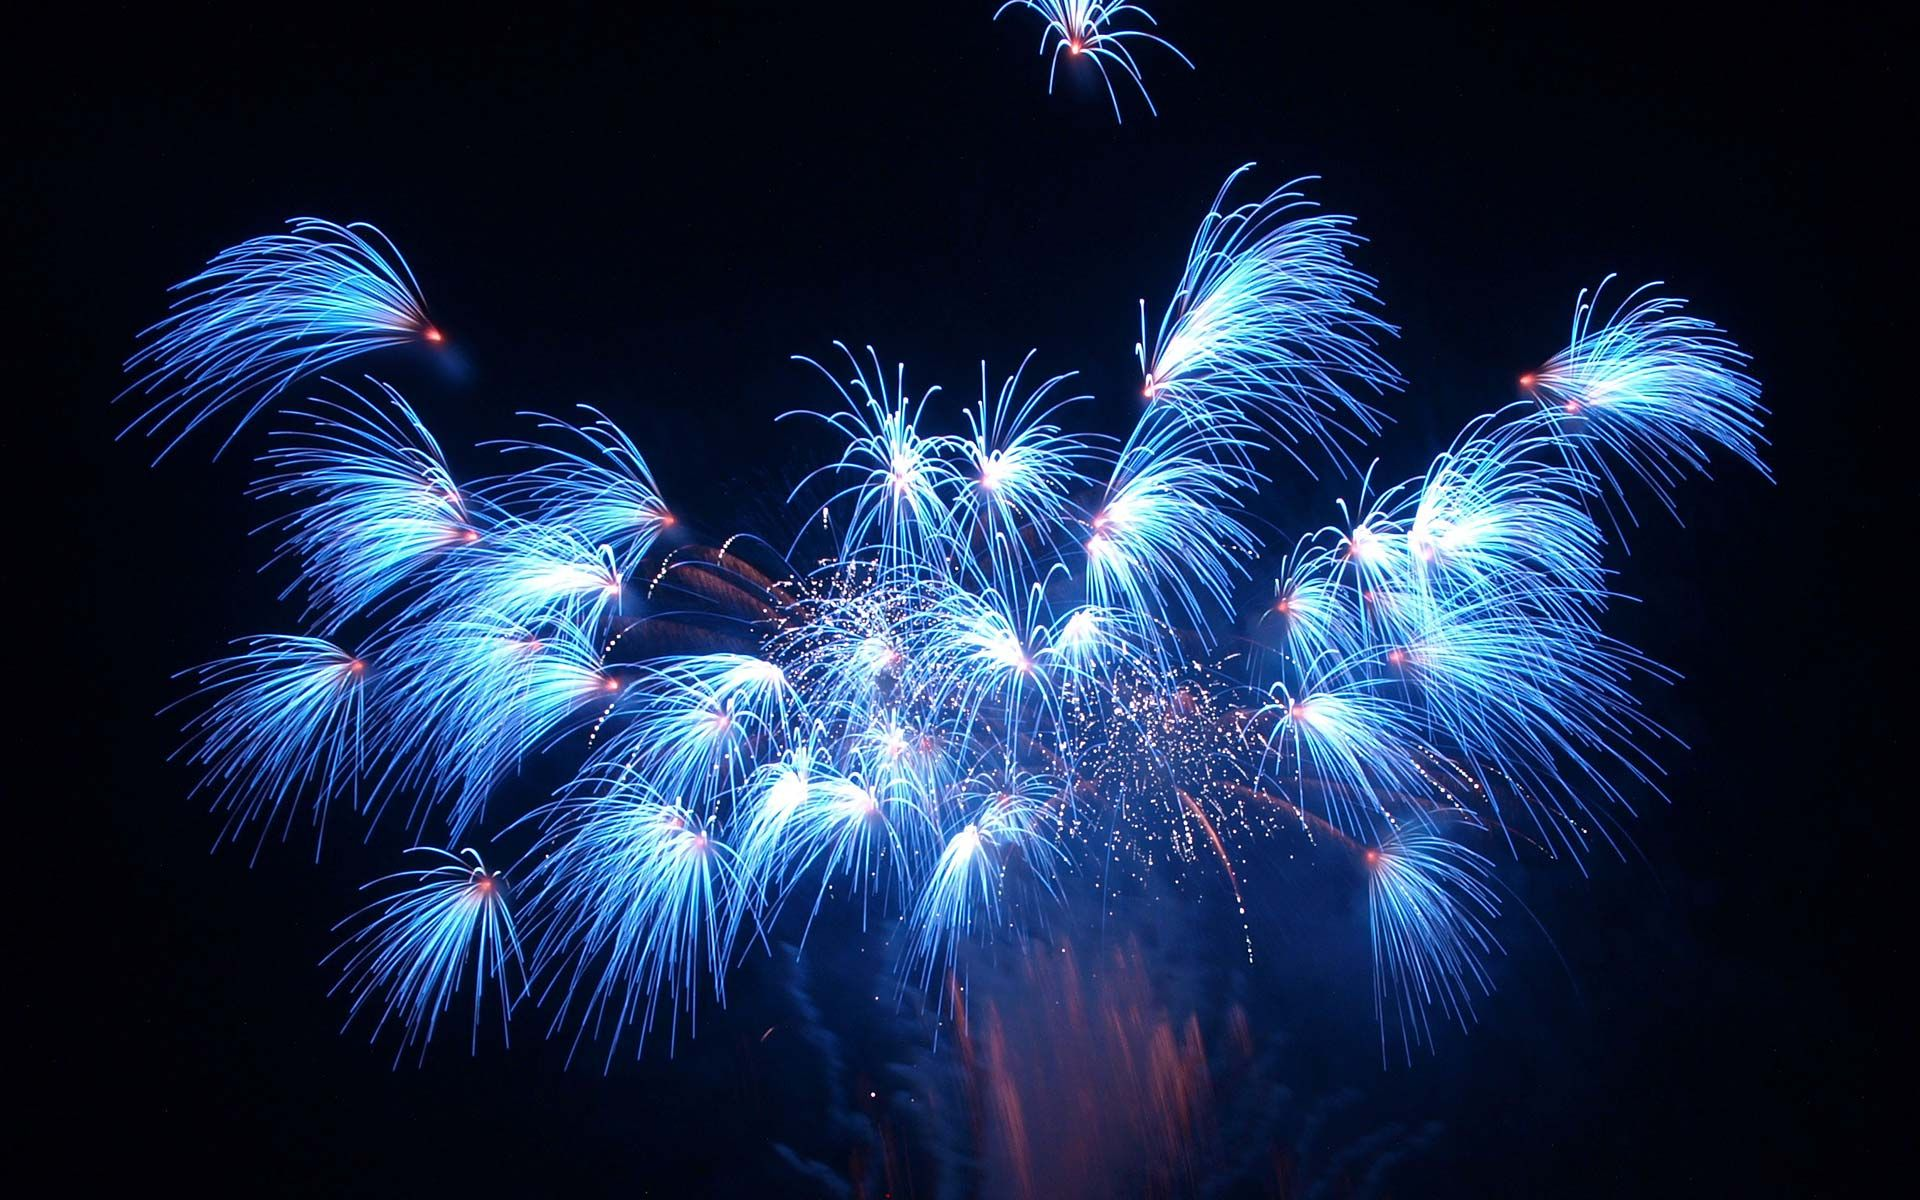 fireworks hd wallpapers backgrounds wallpaper | hd wallpapers